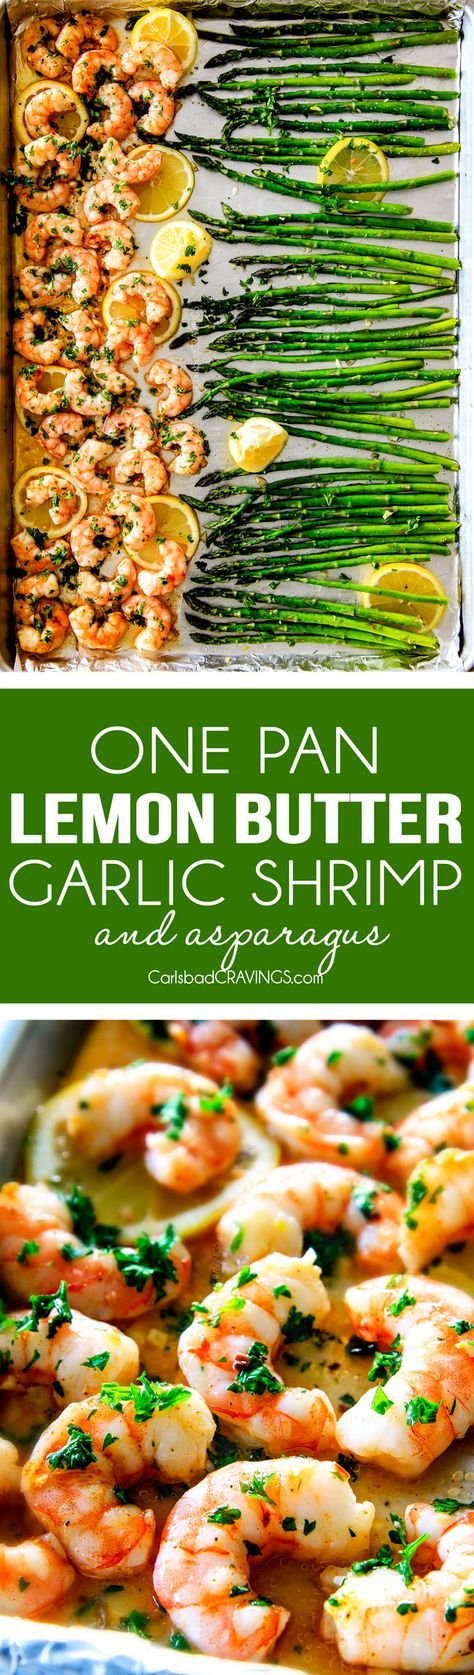 One Pan Roasted Lemon Butter Garlic Shrimp and Asparagus bursting with flavor and on your table in 15 MINUTES! No joke! The easiest, most satisfying meal that tastes totally gourmet! (Lemon Butter Baked)